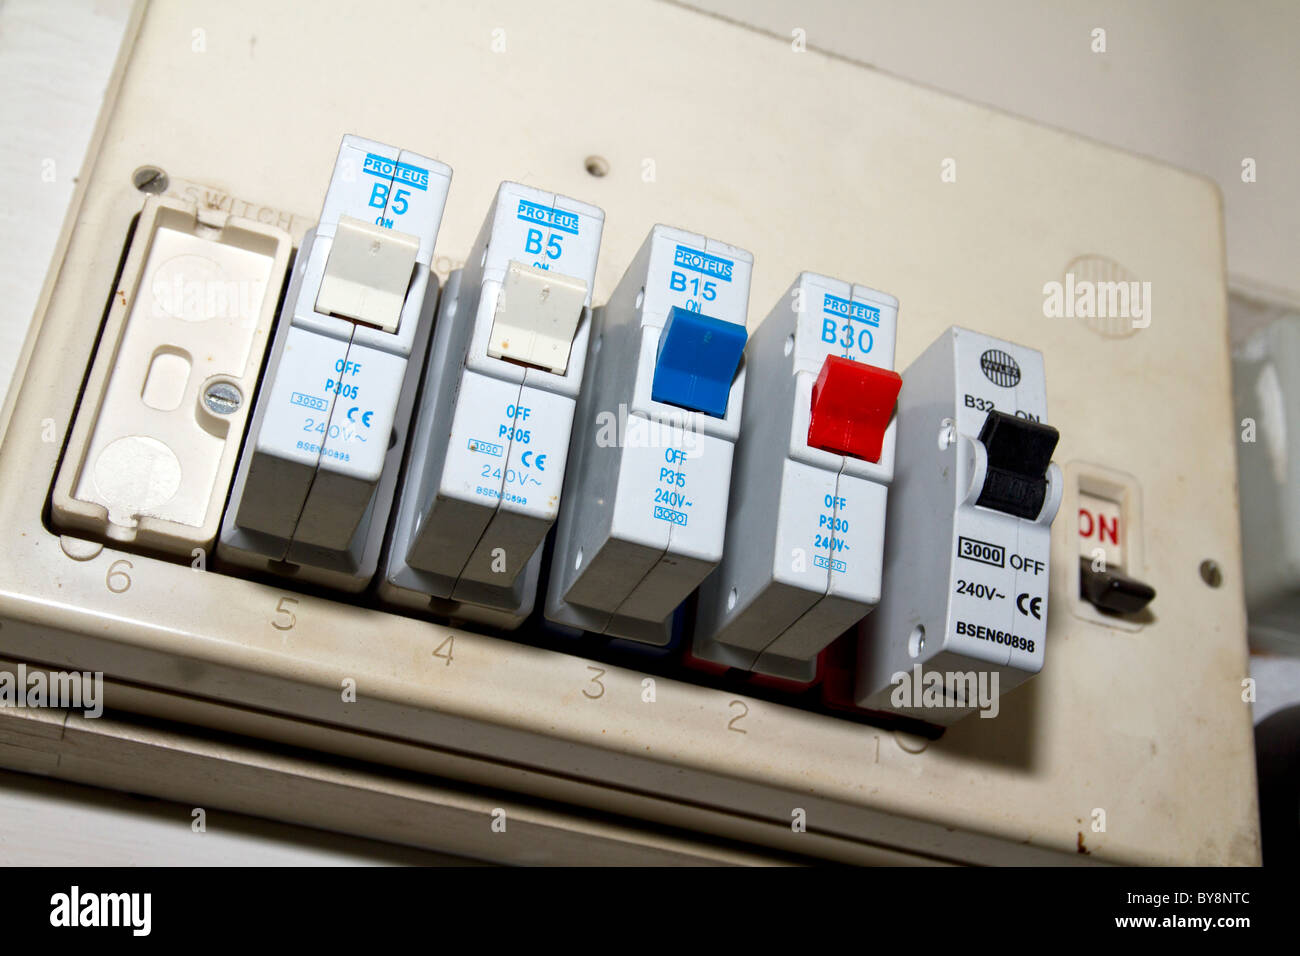 uk old electric fuse box in a london house stock photo 33998844 rh alamy com old house fuse box problems old house fuse box diagram